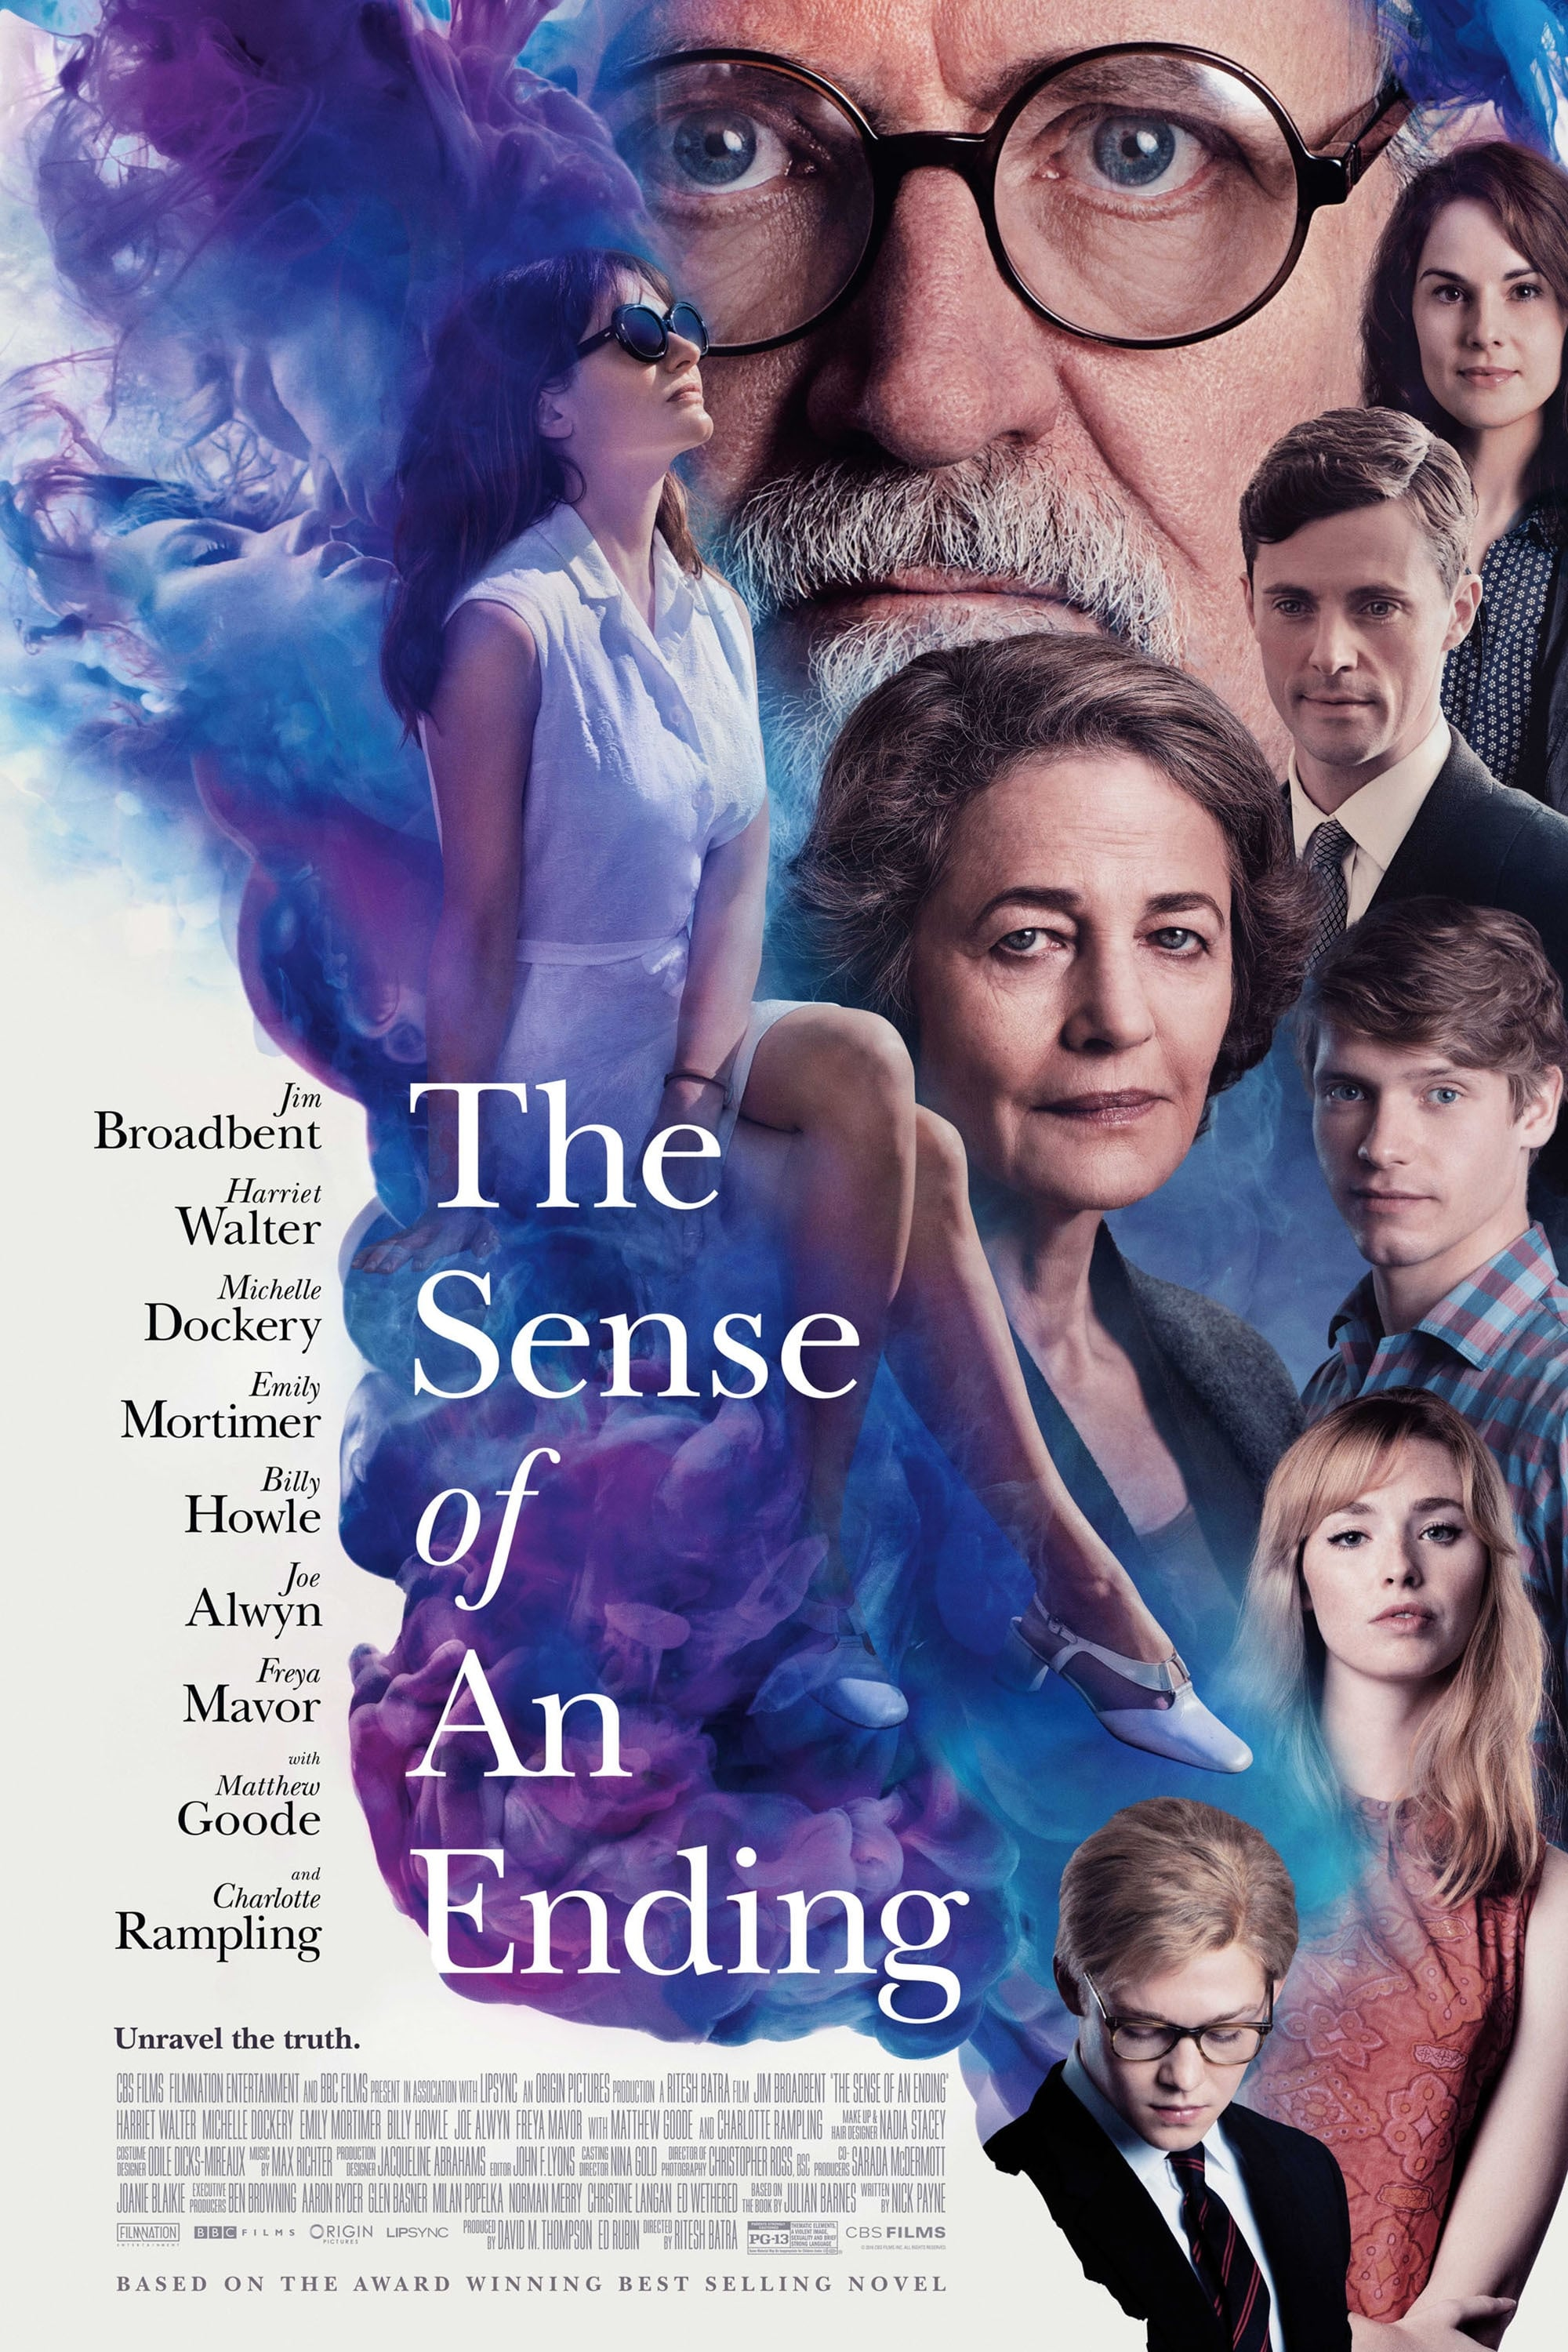 Pabaigos jausmas / The Sense of an Ending (2017)